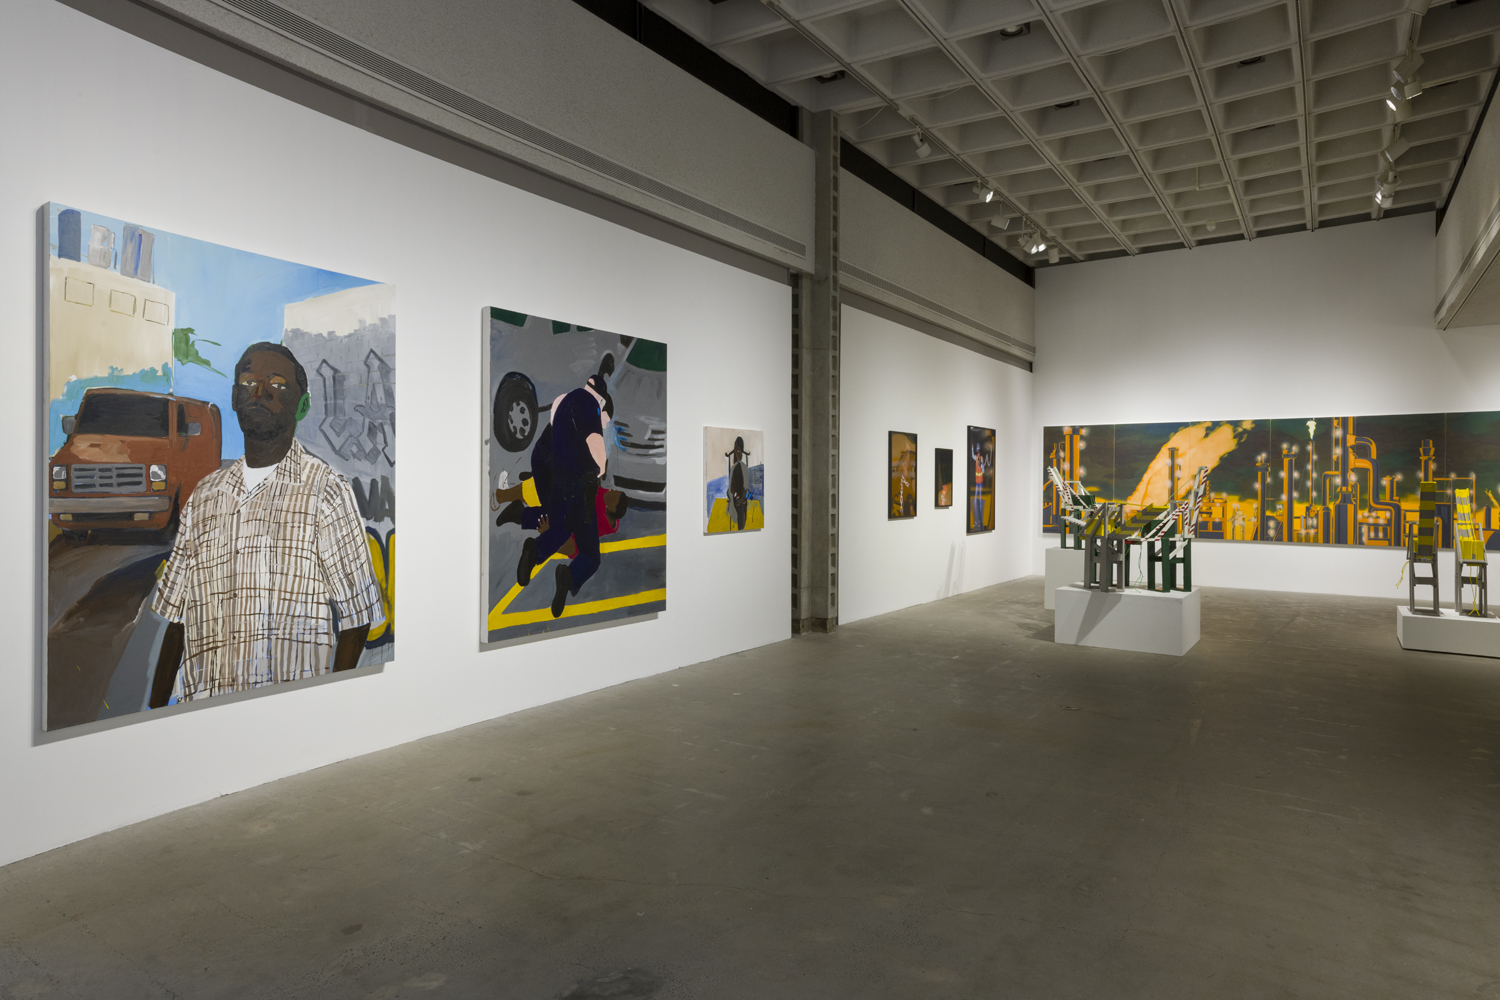 The artwork installation by the artist Henry Taylor features three paintings of various sizes depicting different figures. One painting depicts a male, person of color wearing a light colored checkered shirt with a brown van parked behind him over his left shoulder. To the right of this painting are two figures (a white police officer and a person of color) in a struggle on the floor. To the right of this artwork is a small painting of a male, person of color sitting in a brown chair. To the right of this artwork installation is another installation by a different artist named Mario Ybarra Jr. This artwork installation includes a large, horizontal painting of the cityscape of Wilmington in black and orange colors, photographs of construction workers, and medium-sized wooden replicas of cranes placed on top of white pedestals.